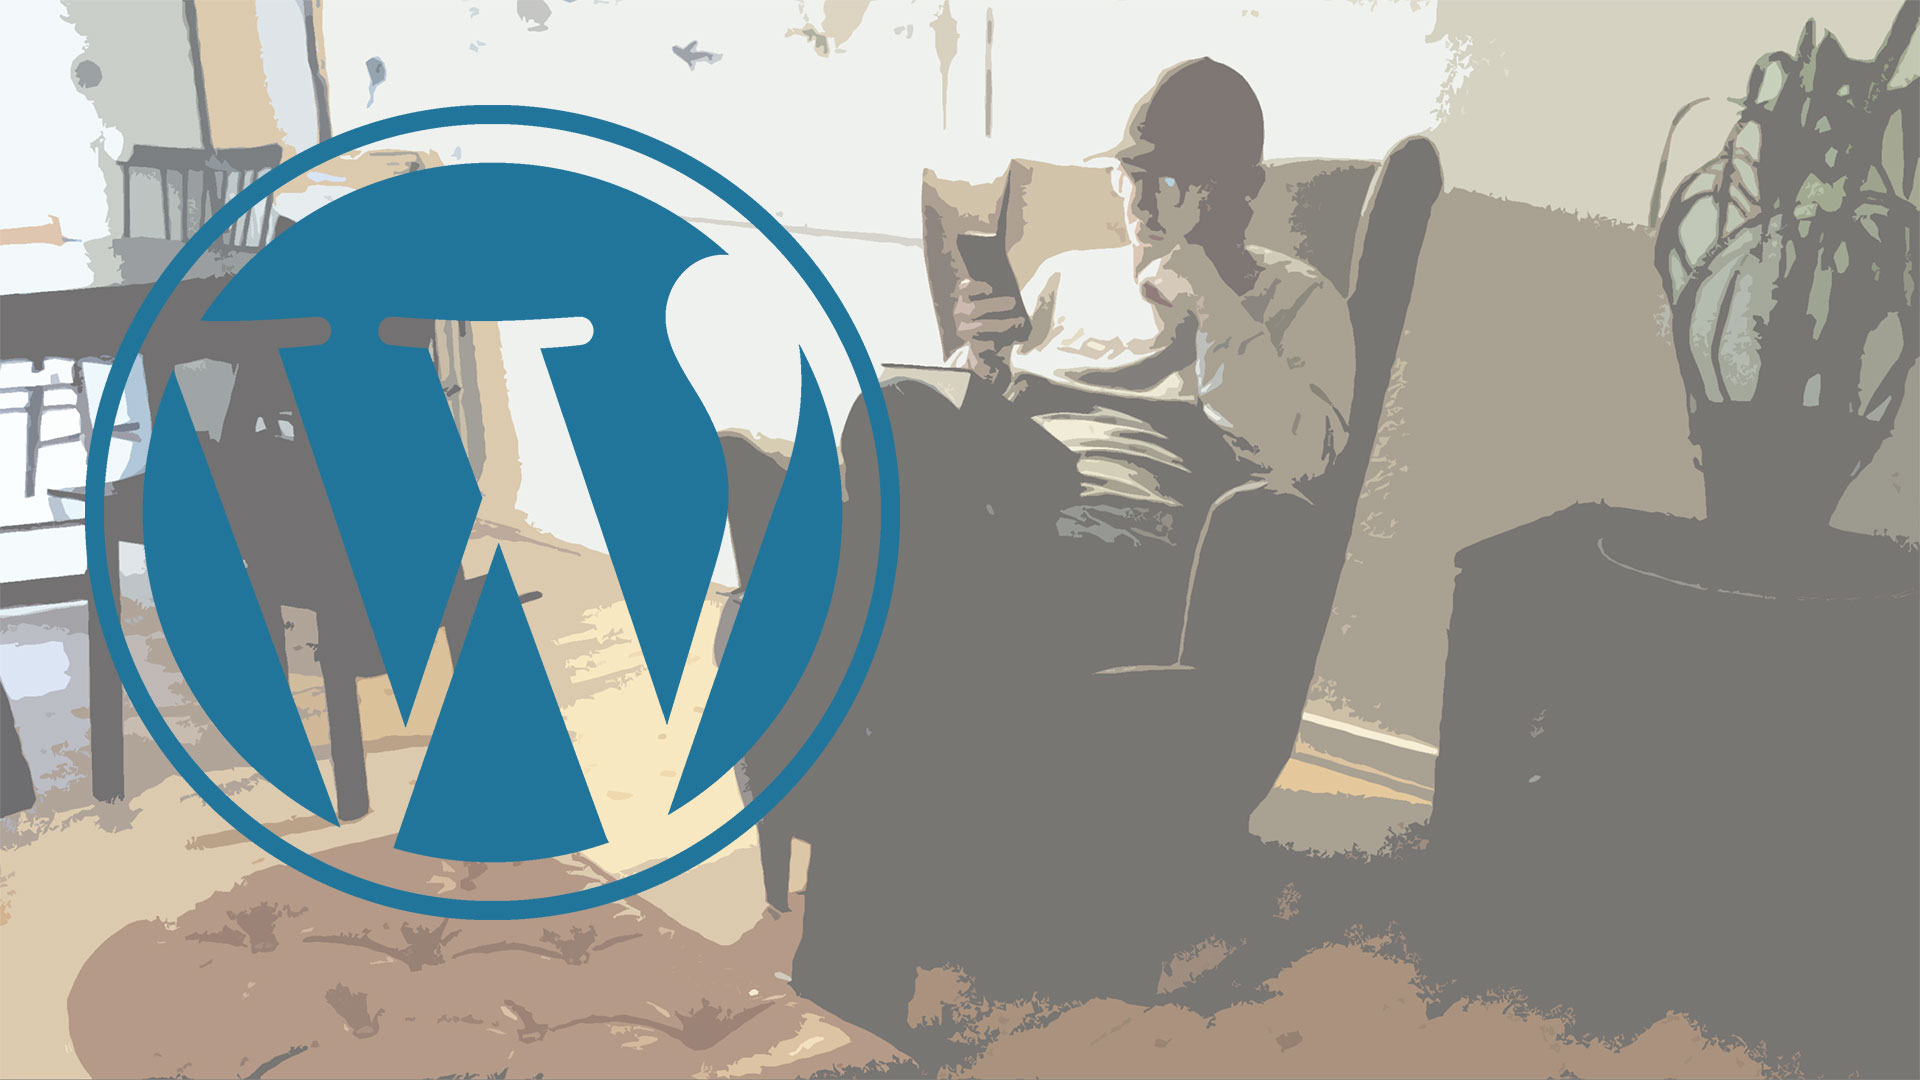 Indlægsbillede til WordPress crash course